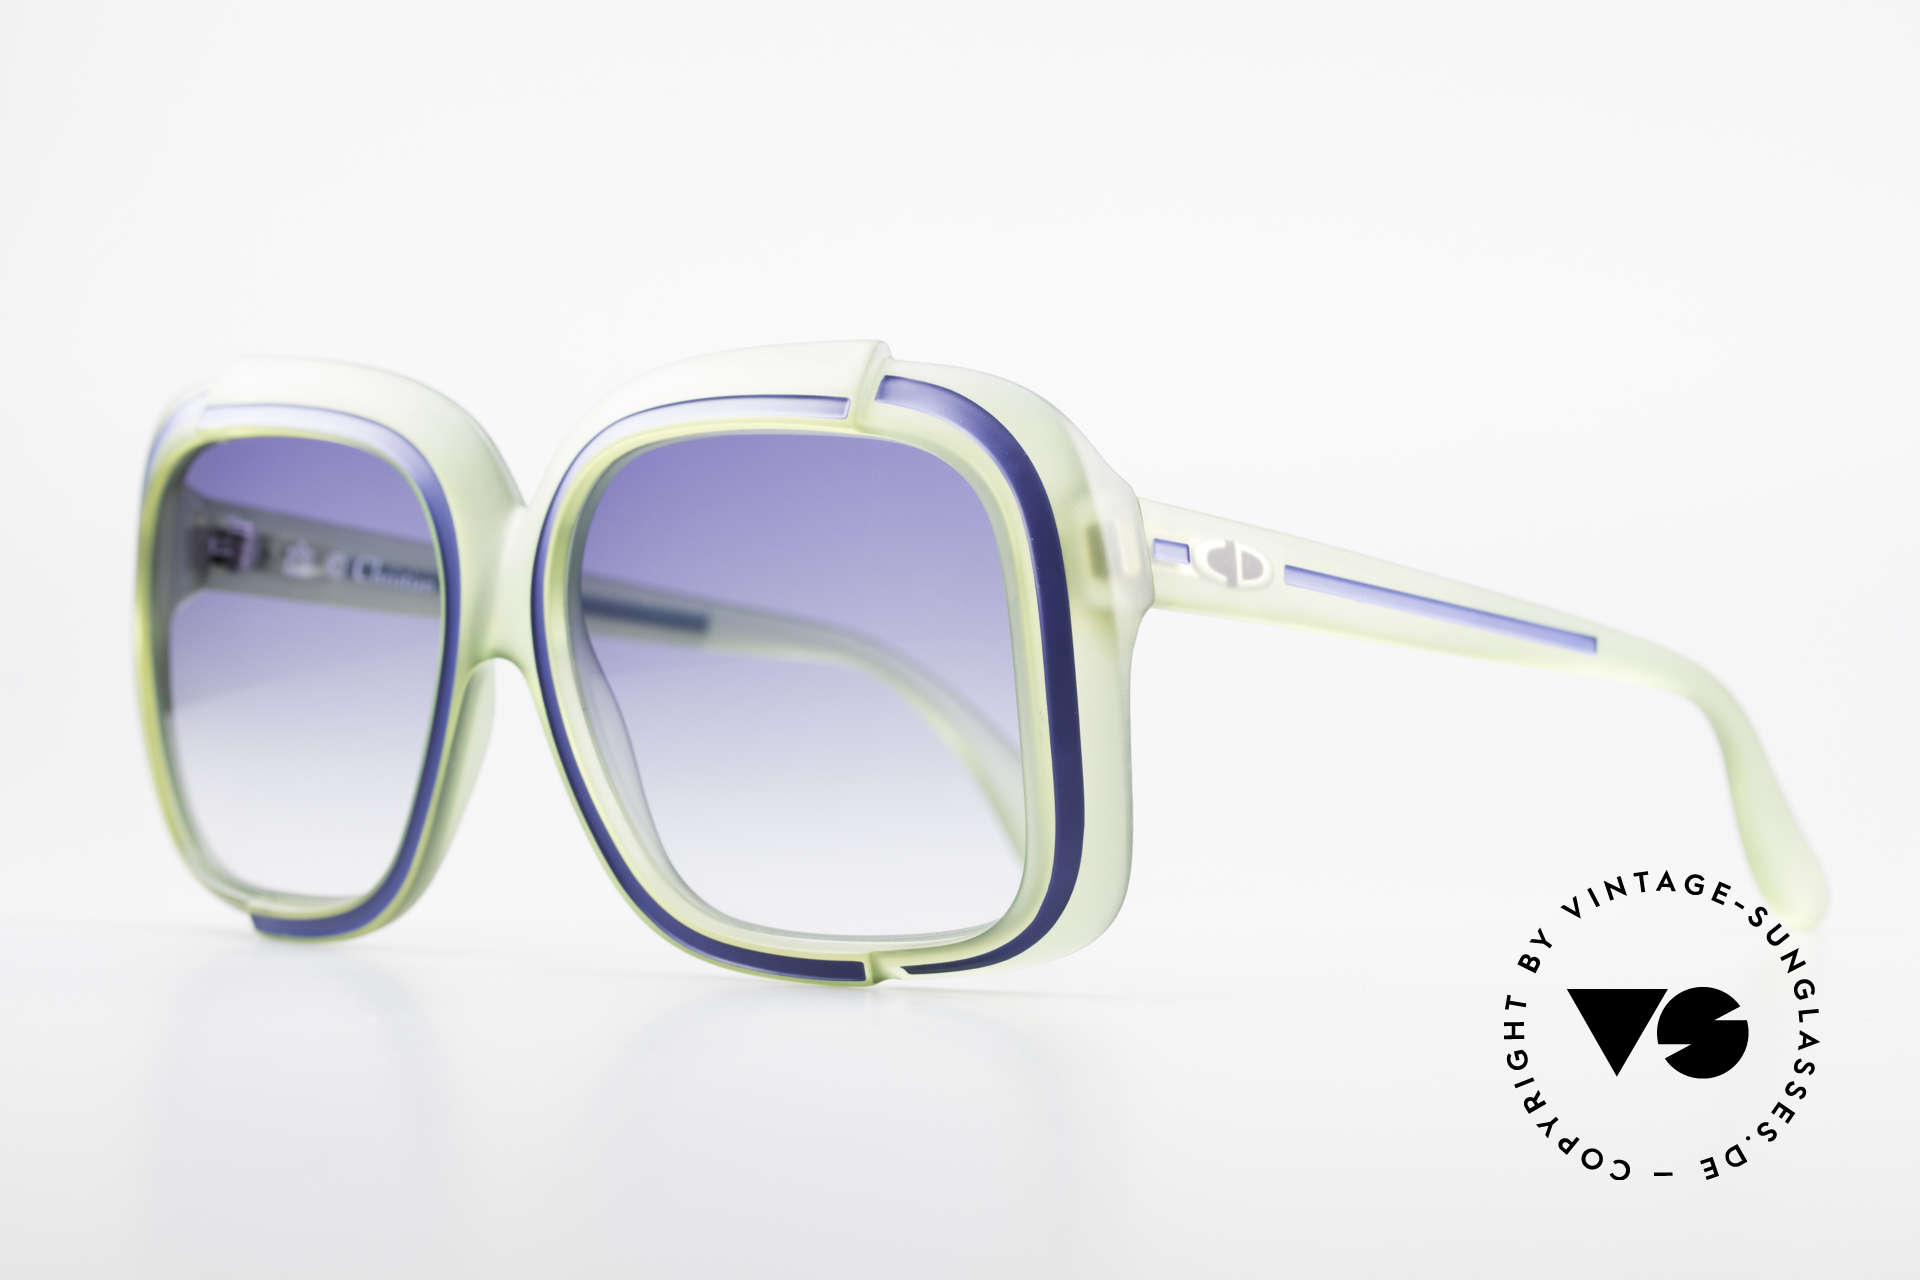 Christian Dior 2042 Rare Vintage Sunglasses 70's, a real vintage rarity; one of a kind; a true eye-catcher!, Made for Women